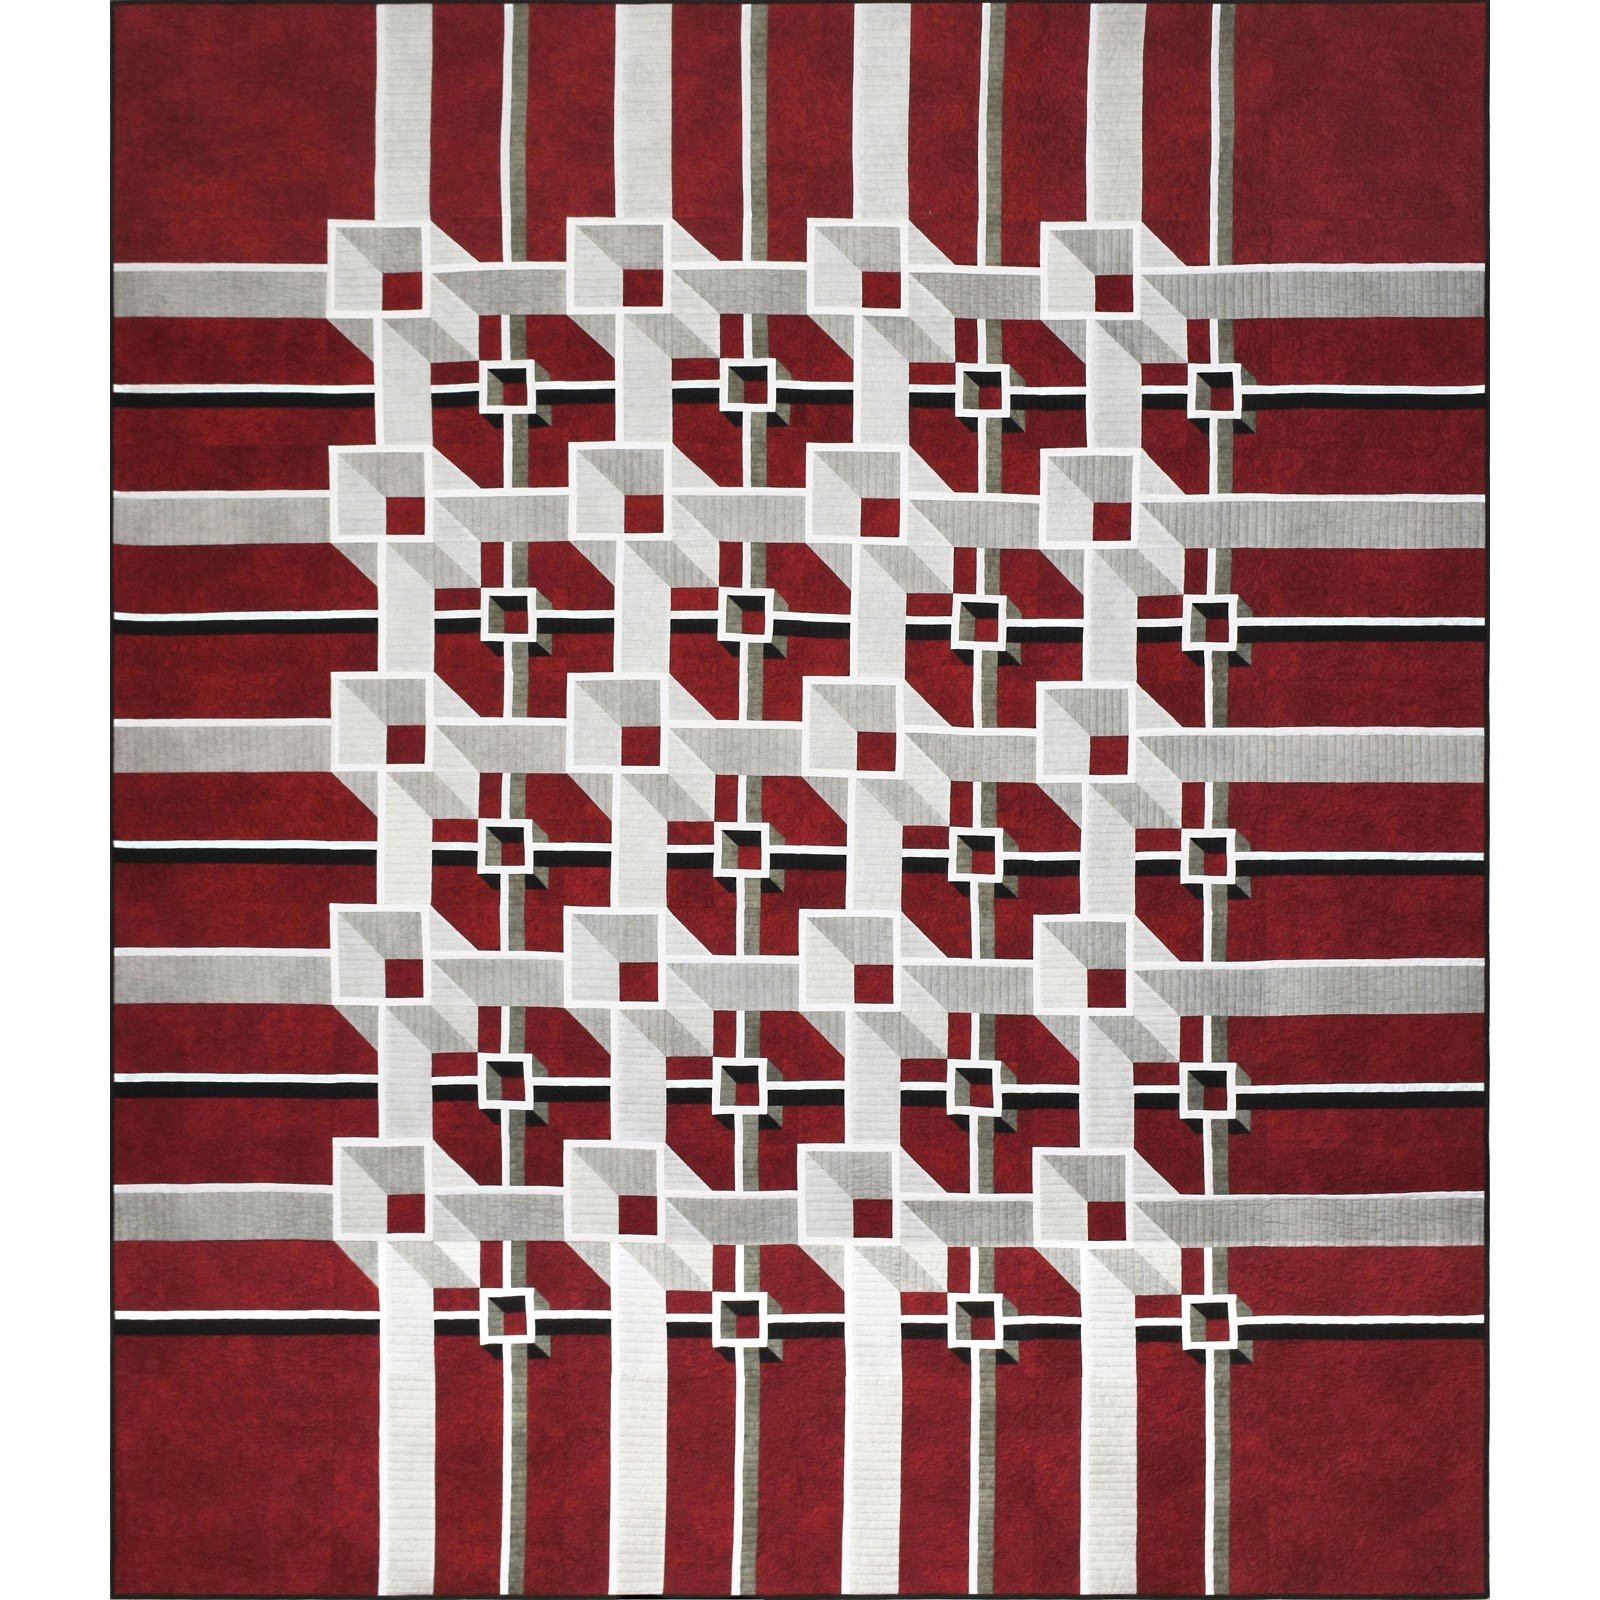 The Guilty Quilter - KIT MASOOB Out of Bounds Quilt KIT $152.00/per kit